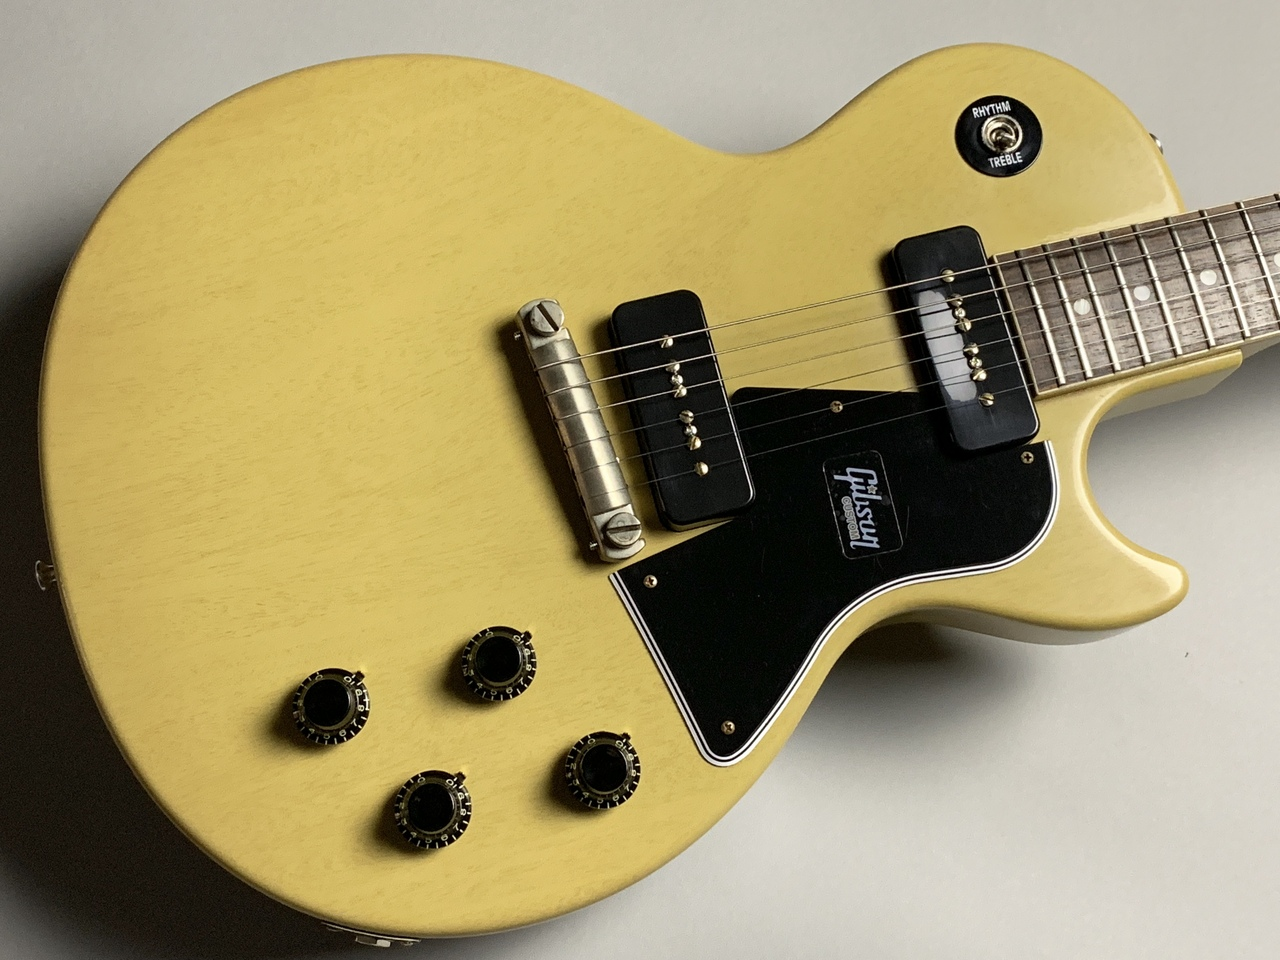 1960 Les Paul Special SC VOS TVYのボディトップ-アップ画像